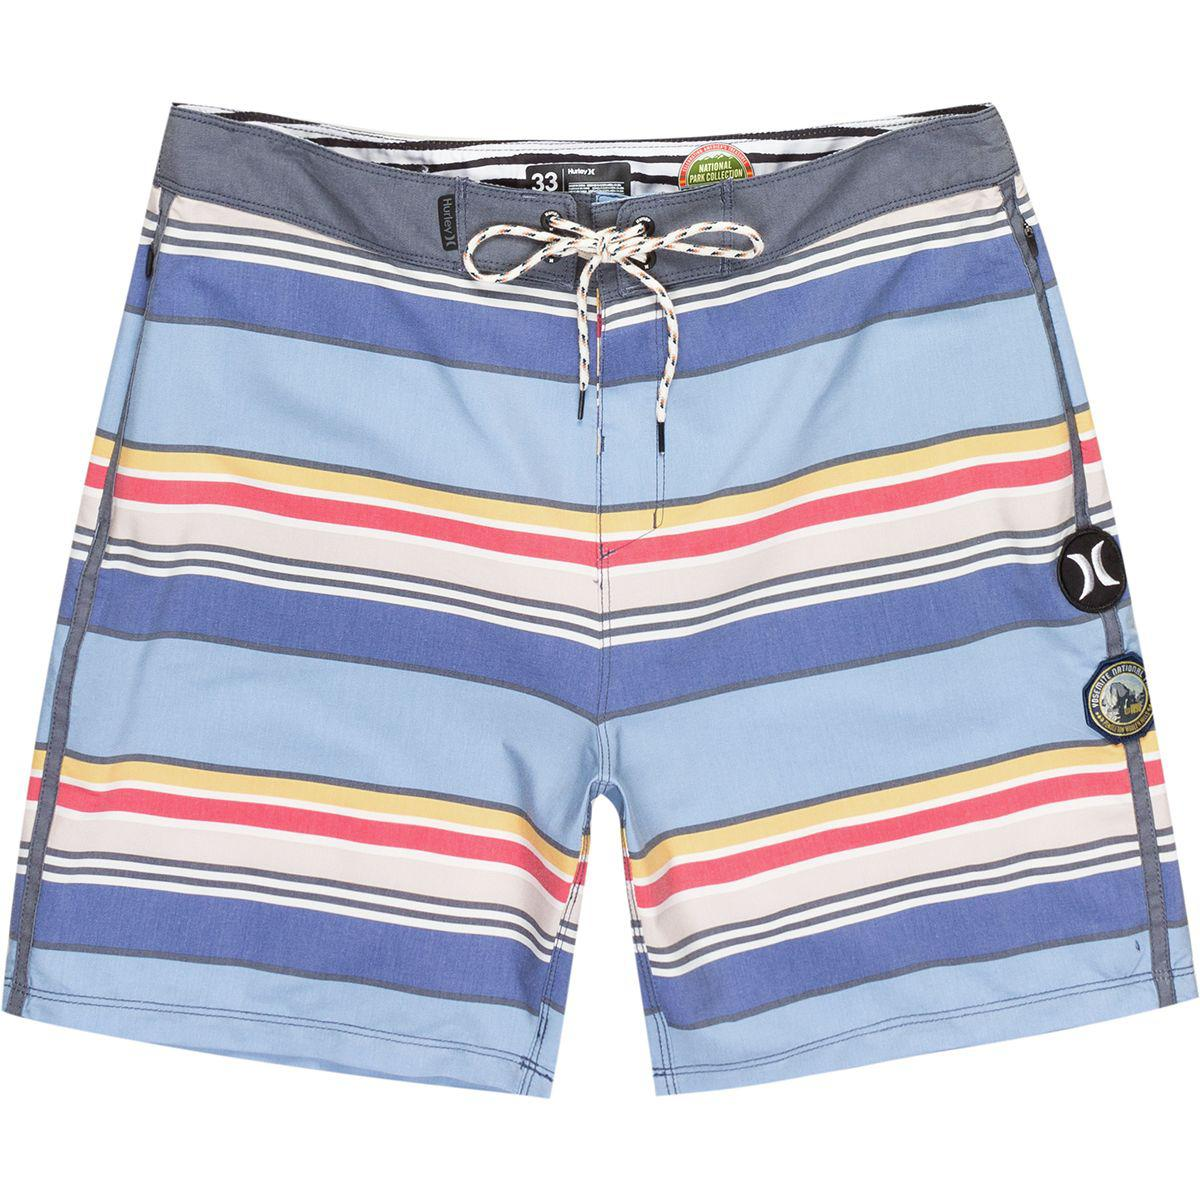 4e79537b2e Lyst - Hurley X Pendleton Yosemite Beachside 18in Board Short in ...